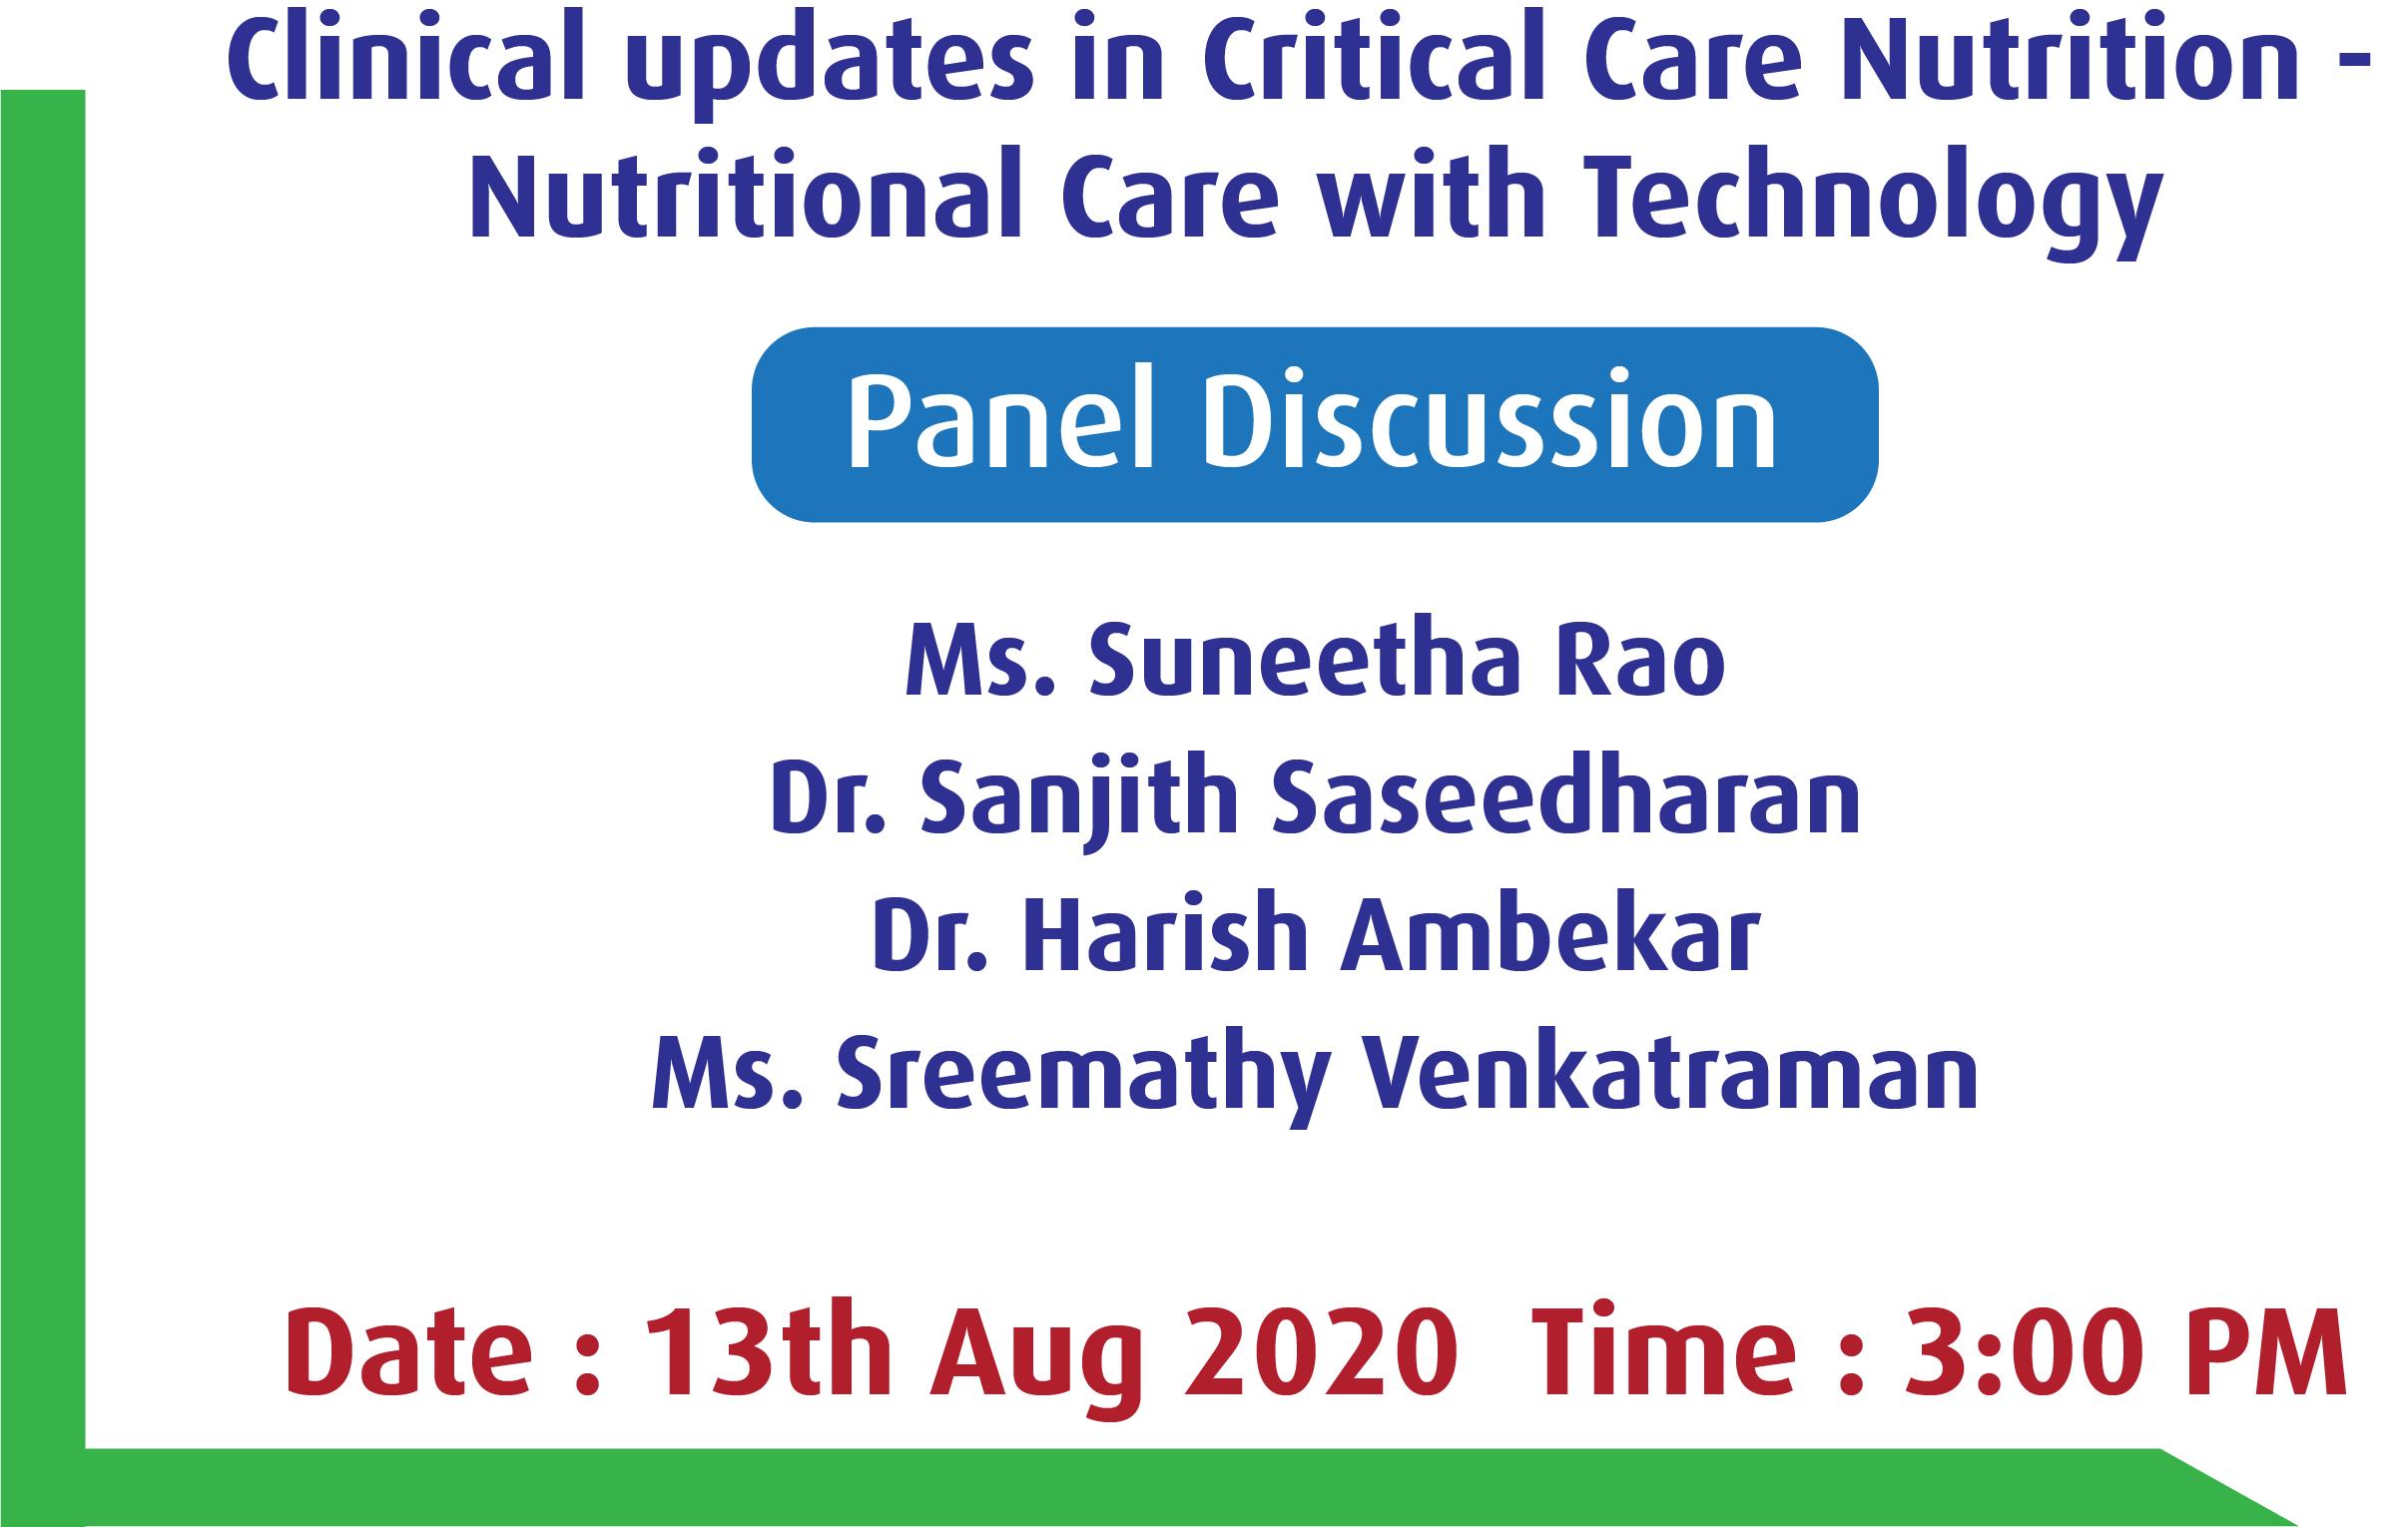 Clinical Updates in Critical Care Nutrition - Nutritional care with Technology